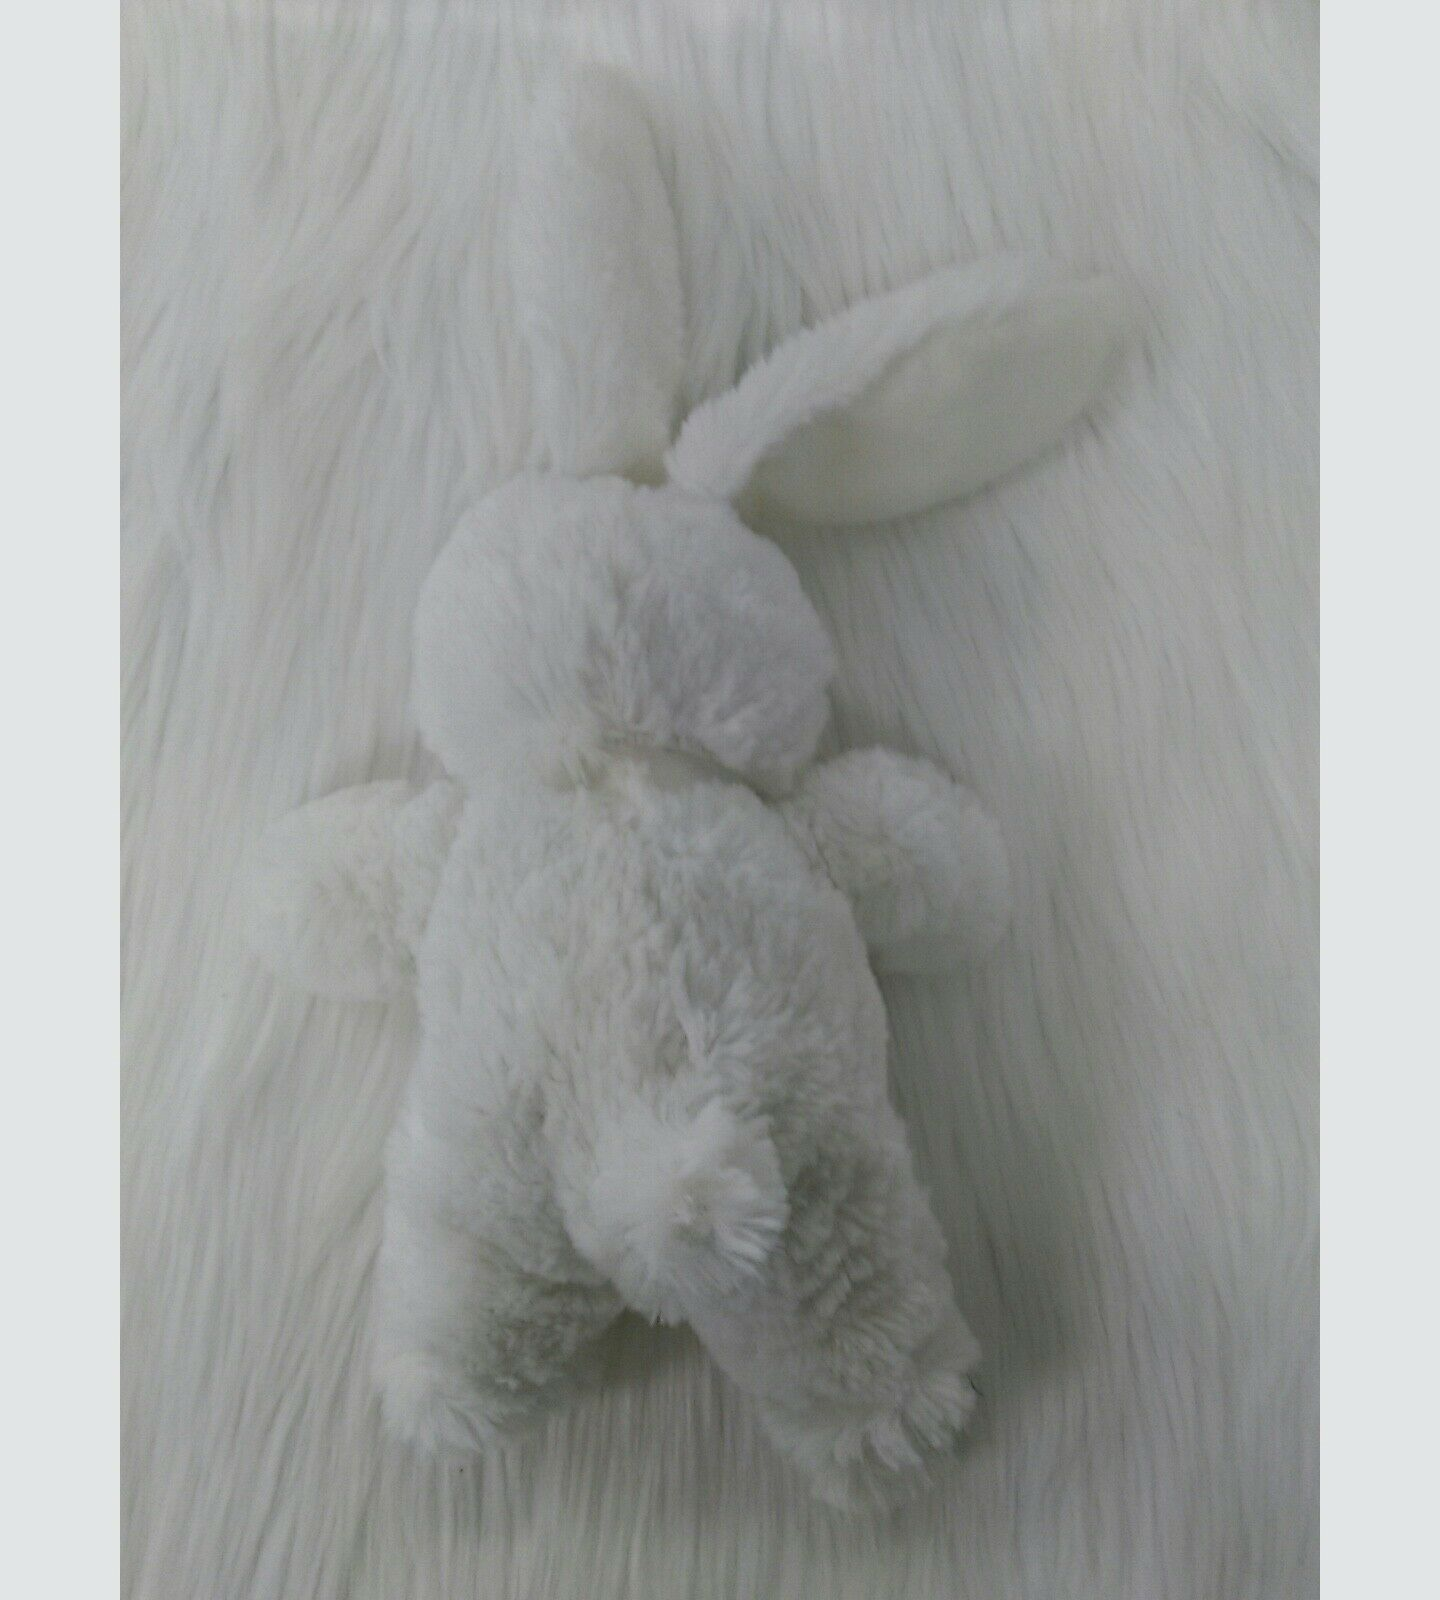 "9"" Animal Adventure Bunny Rabbit White Floppy Ears Soft Plush Easter Toy B211"